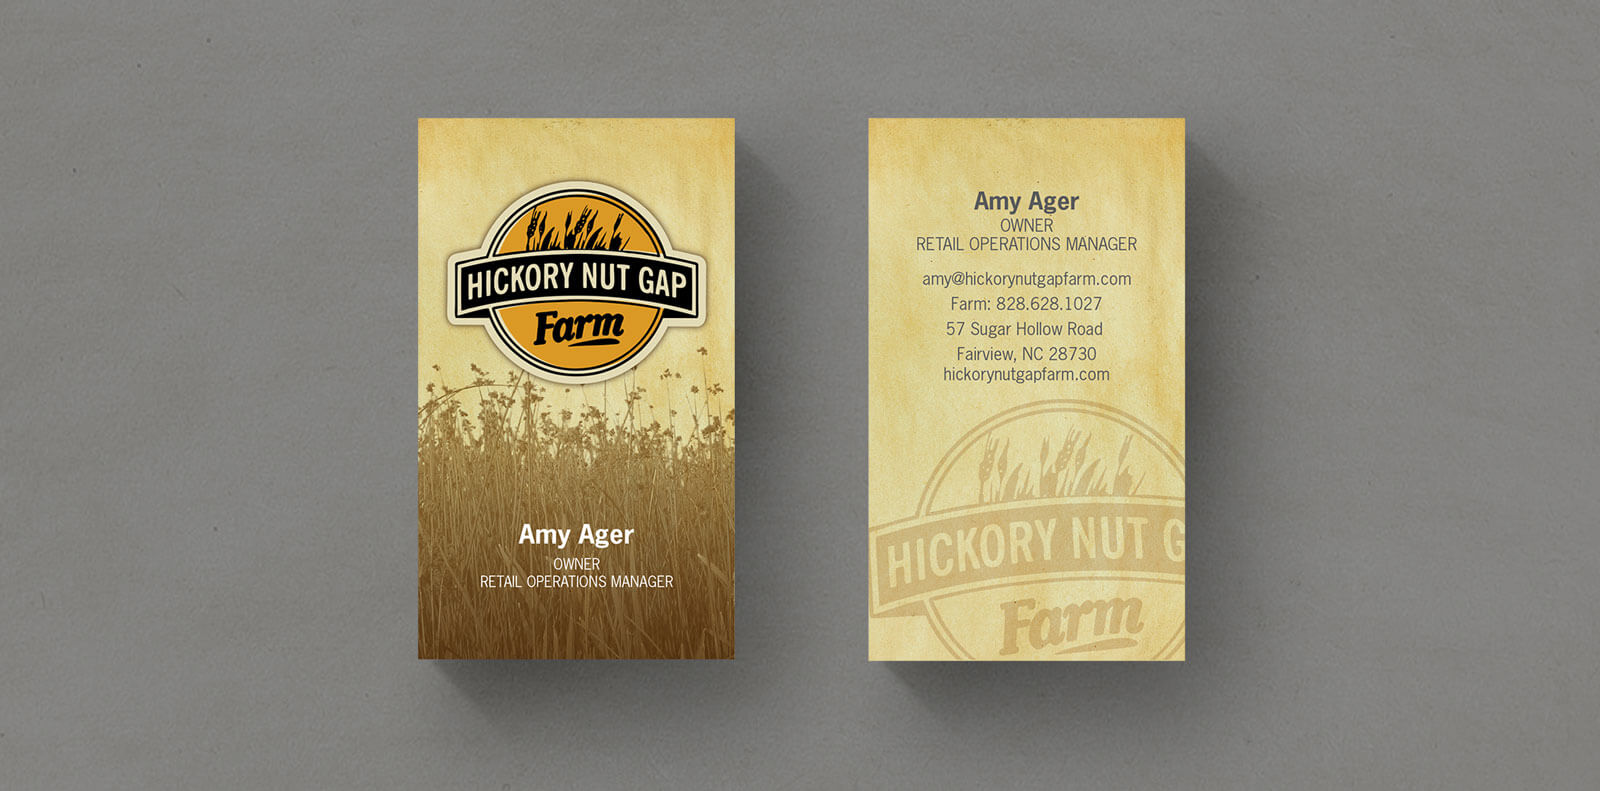 Hickory Nut Gap Farm business card with logo and grass centered